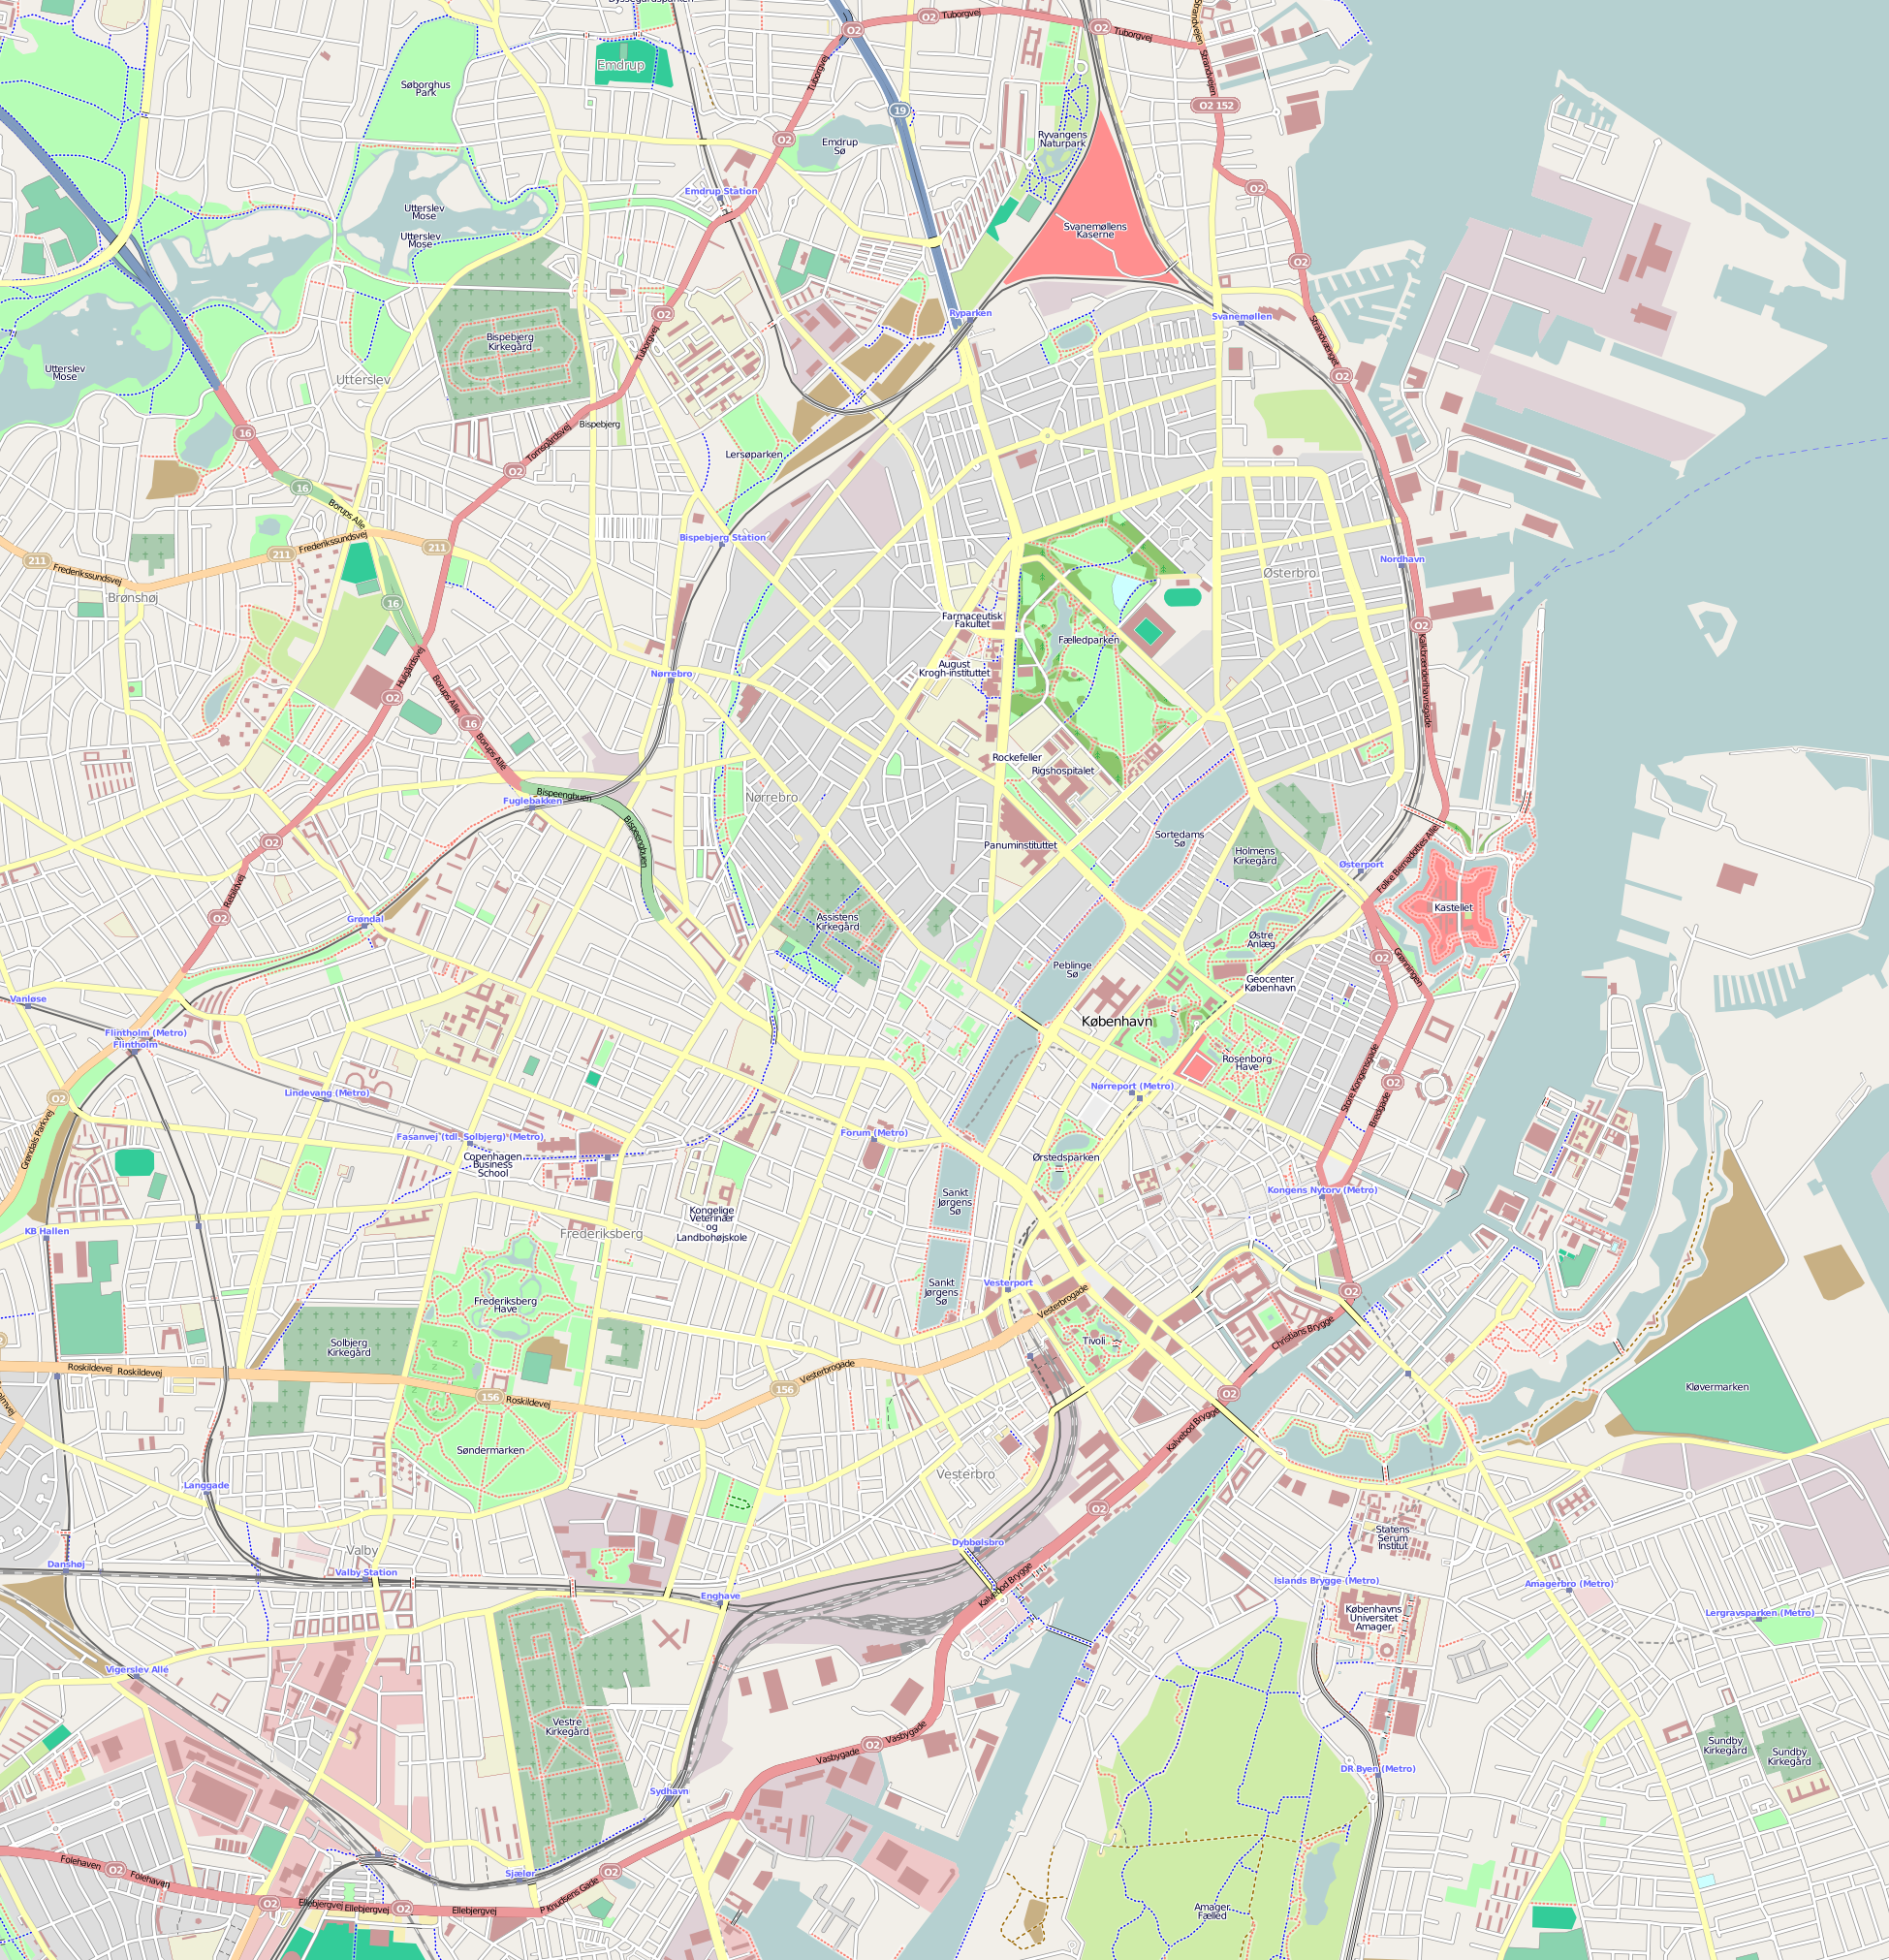 karta köpenhamn File:Map of central Copenhagen.png   Wikimedia Commons karta köpenhamn